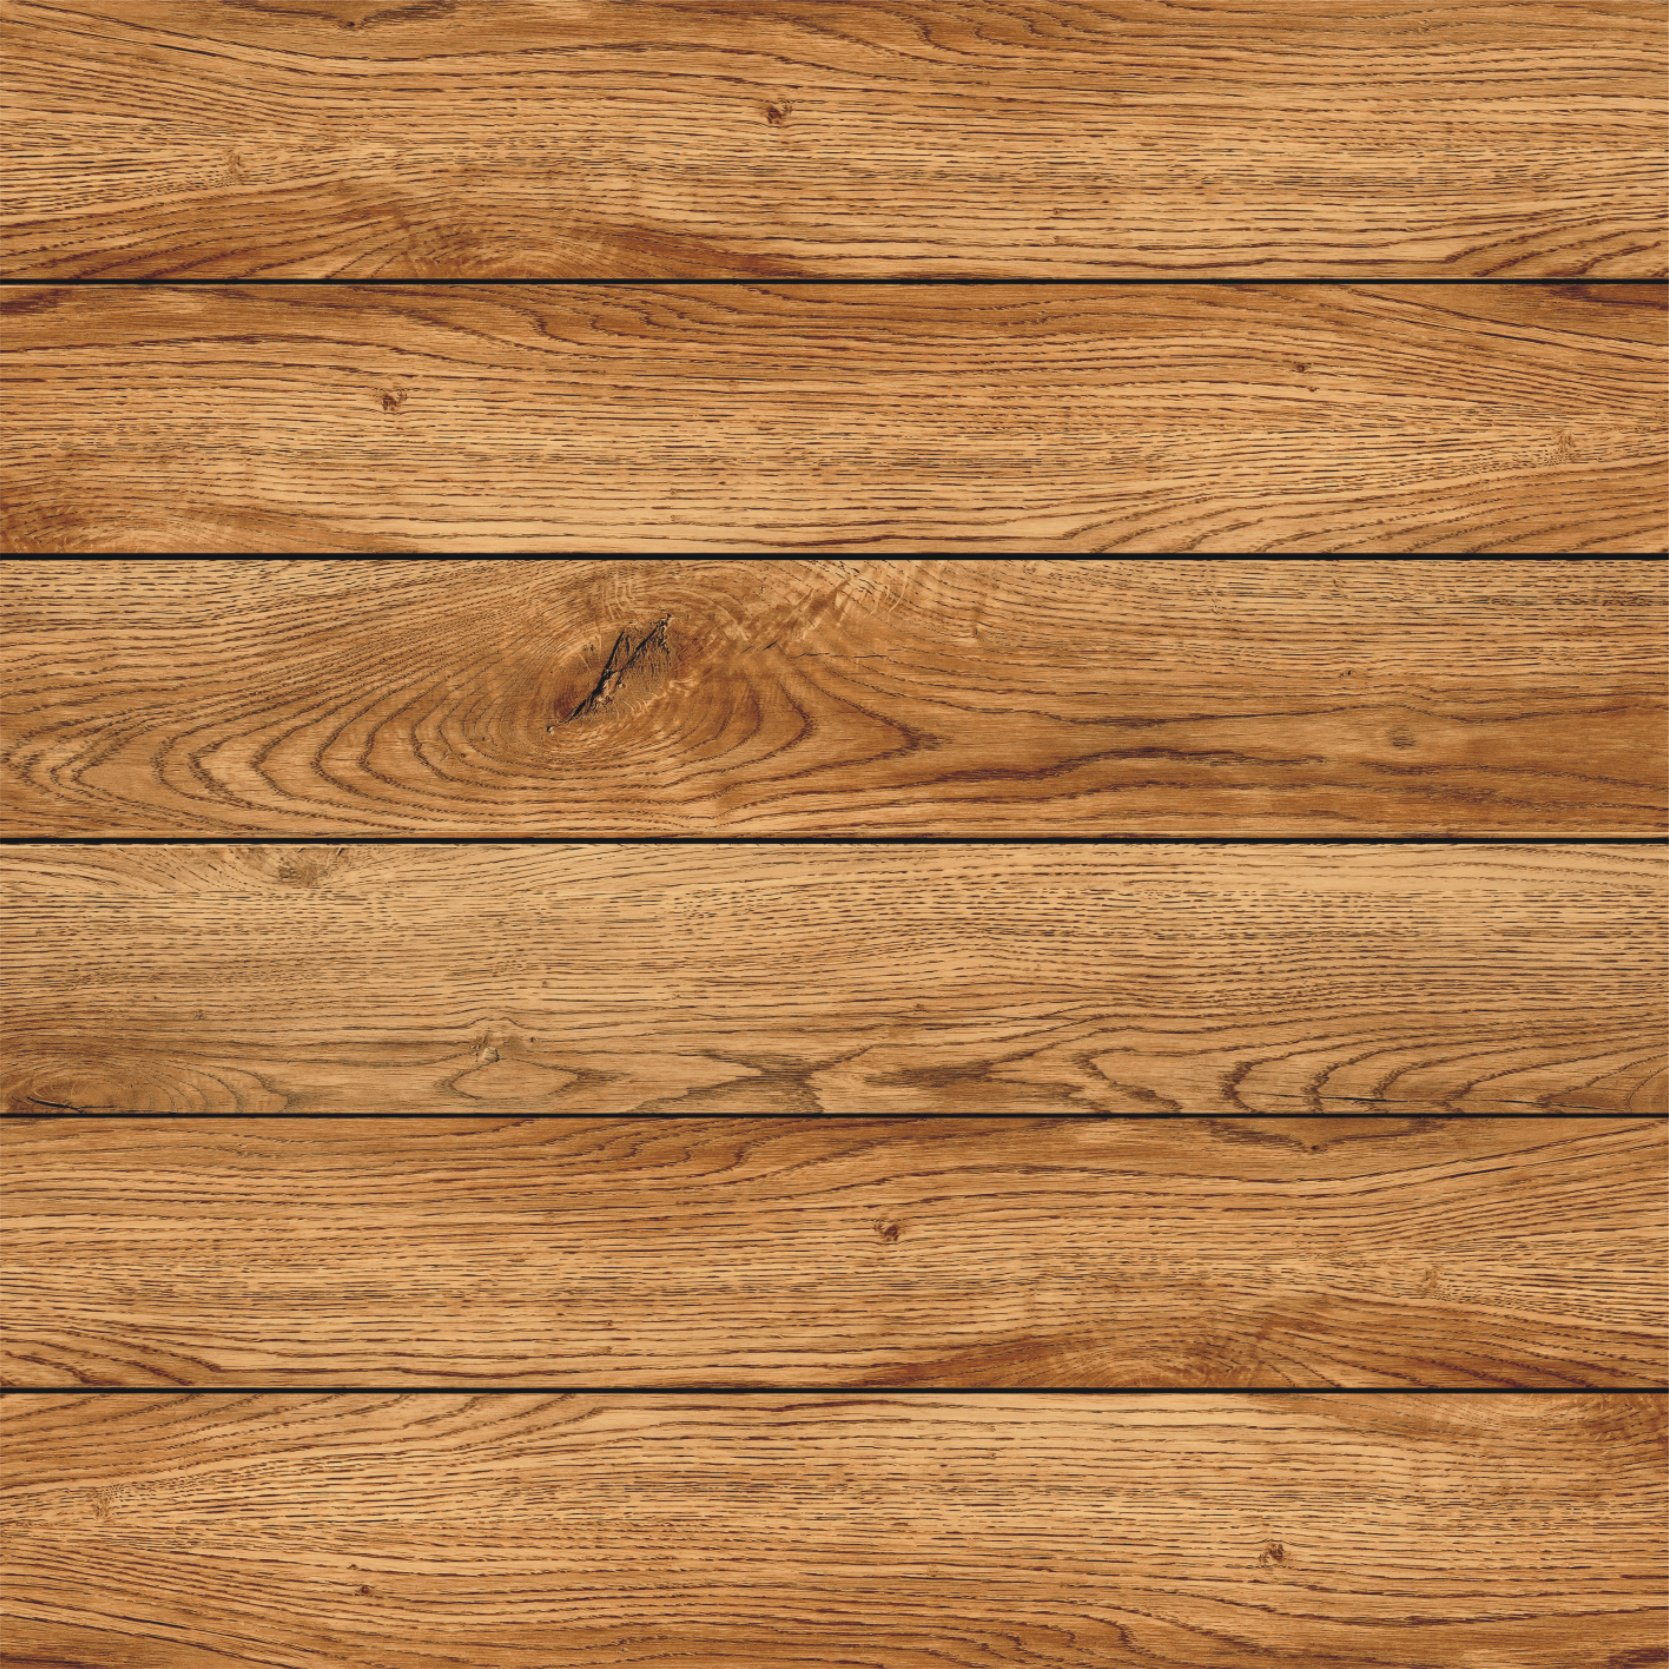 Wood Texture For Elevation : Wooden floor tiles manufacturers gurus